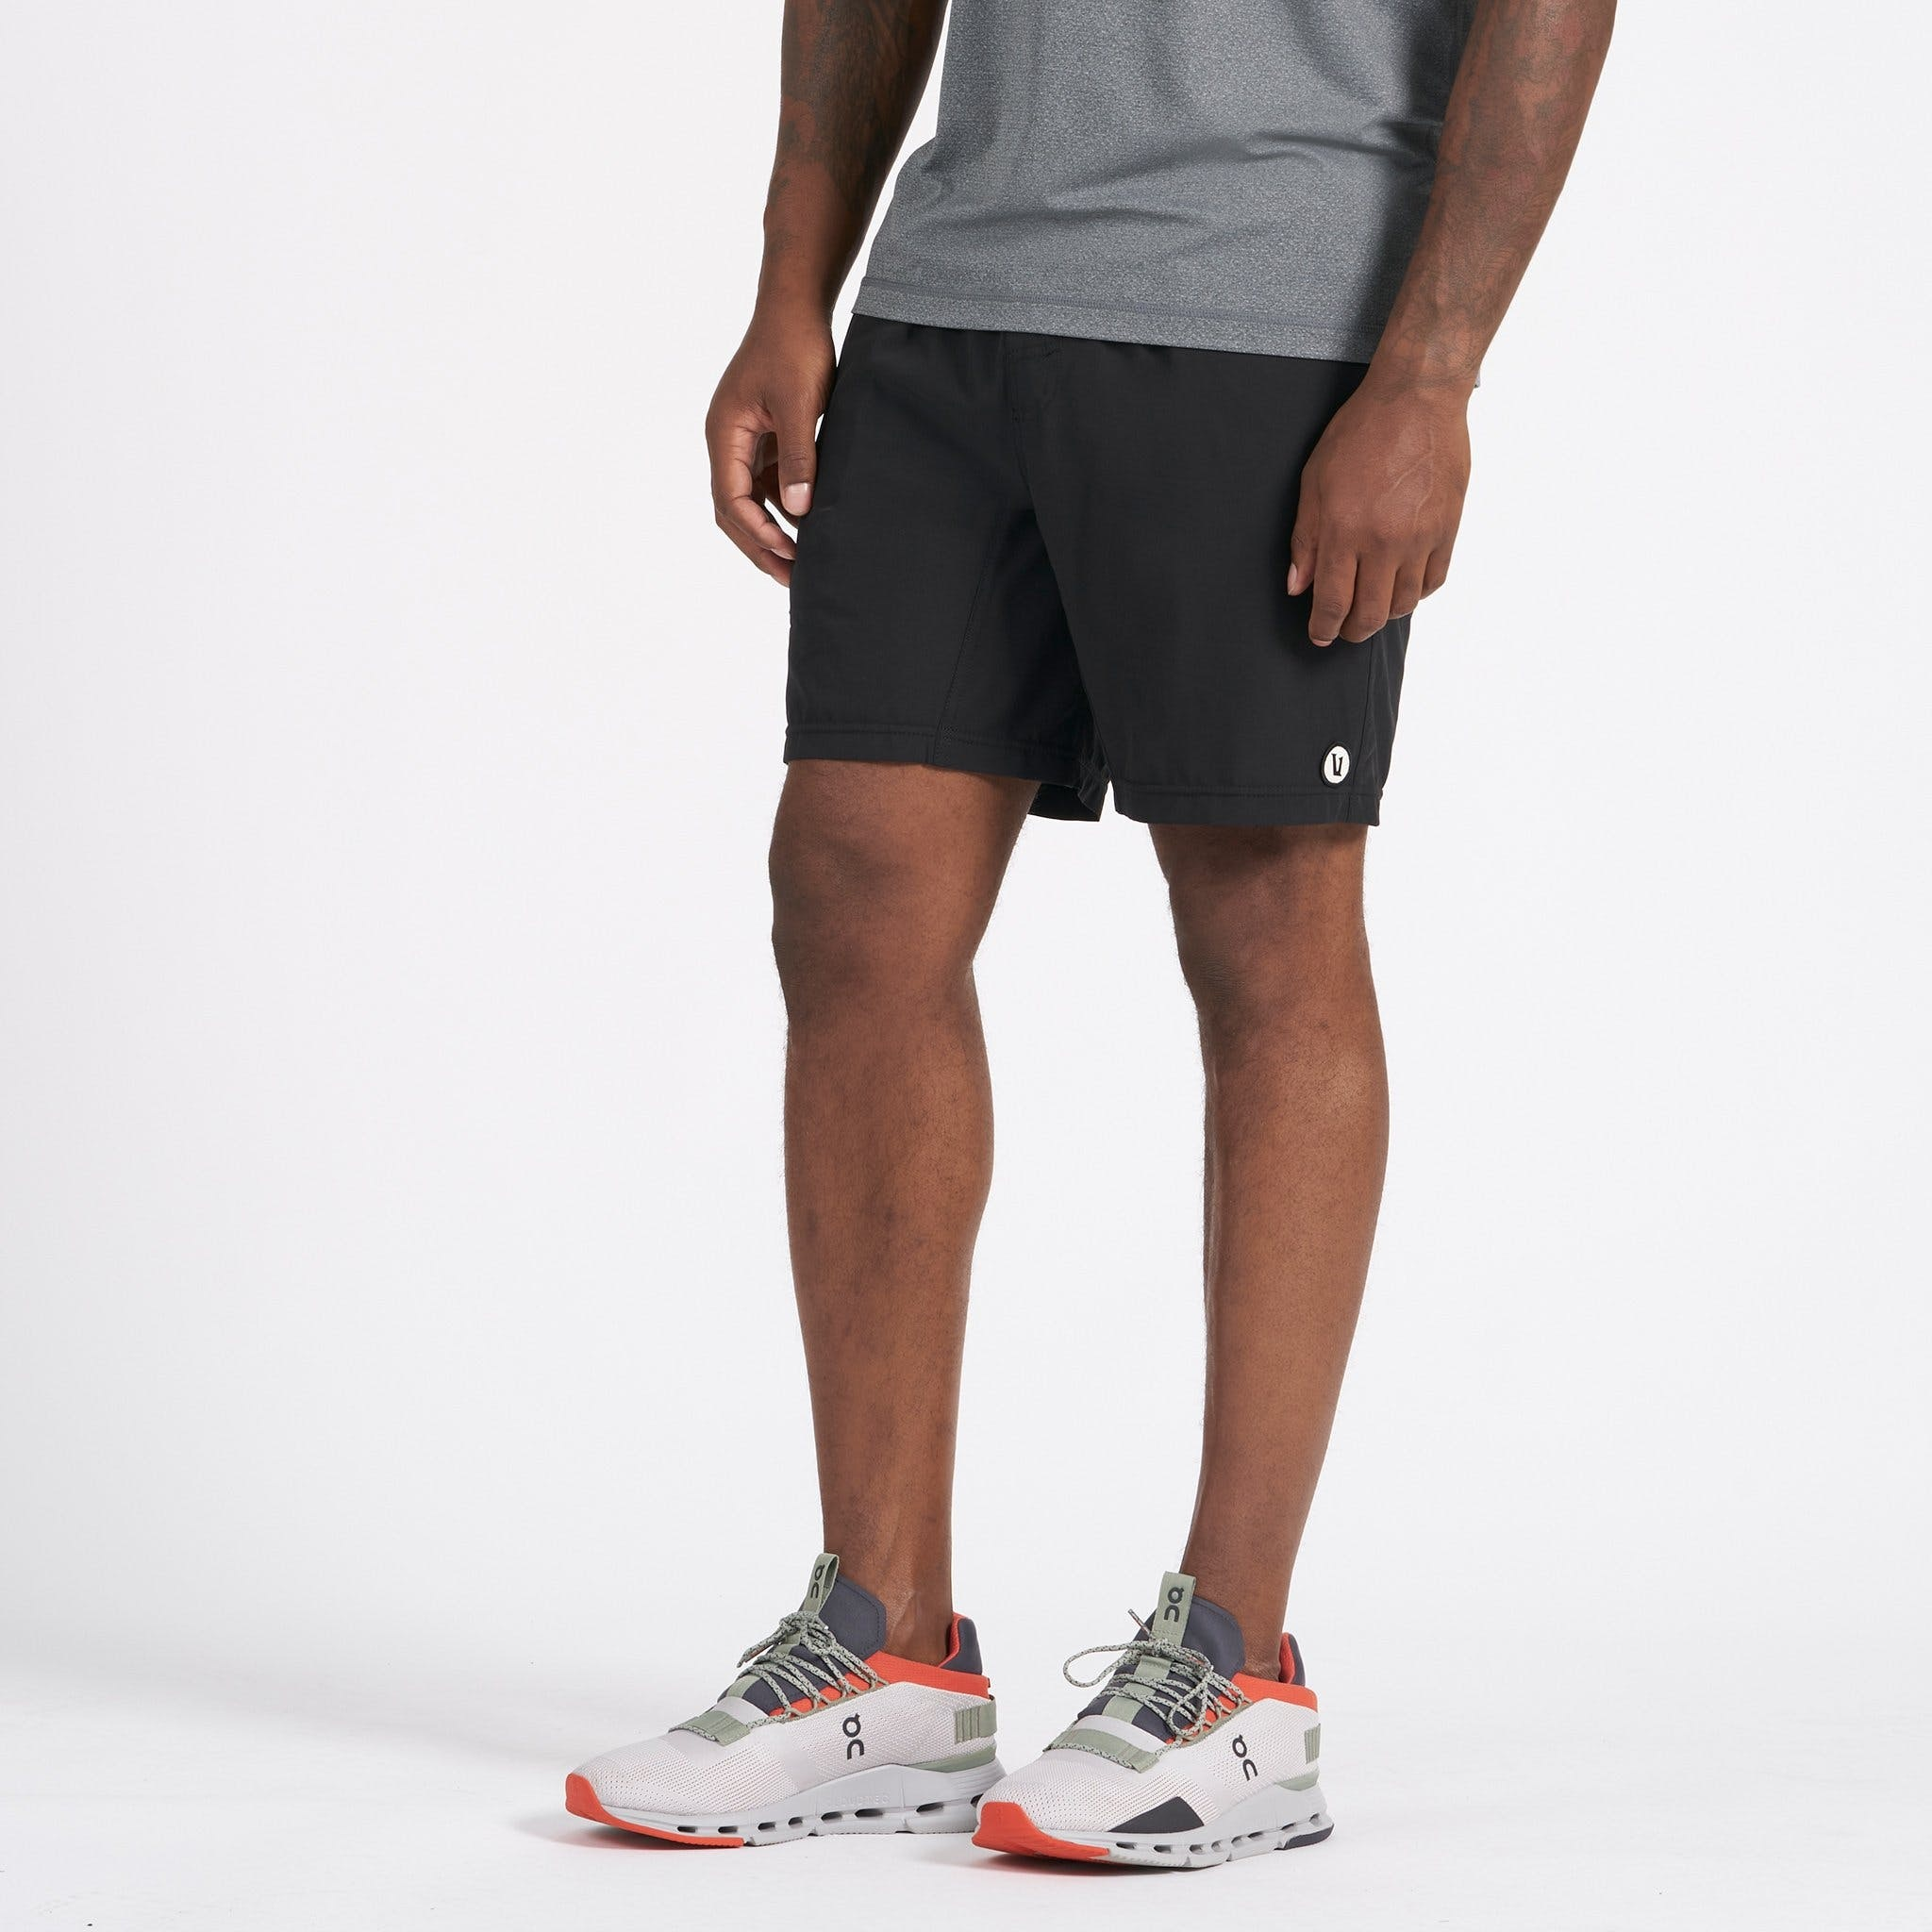 Vuori Vuori Men's Kore Short